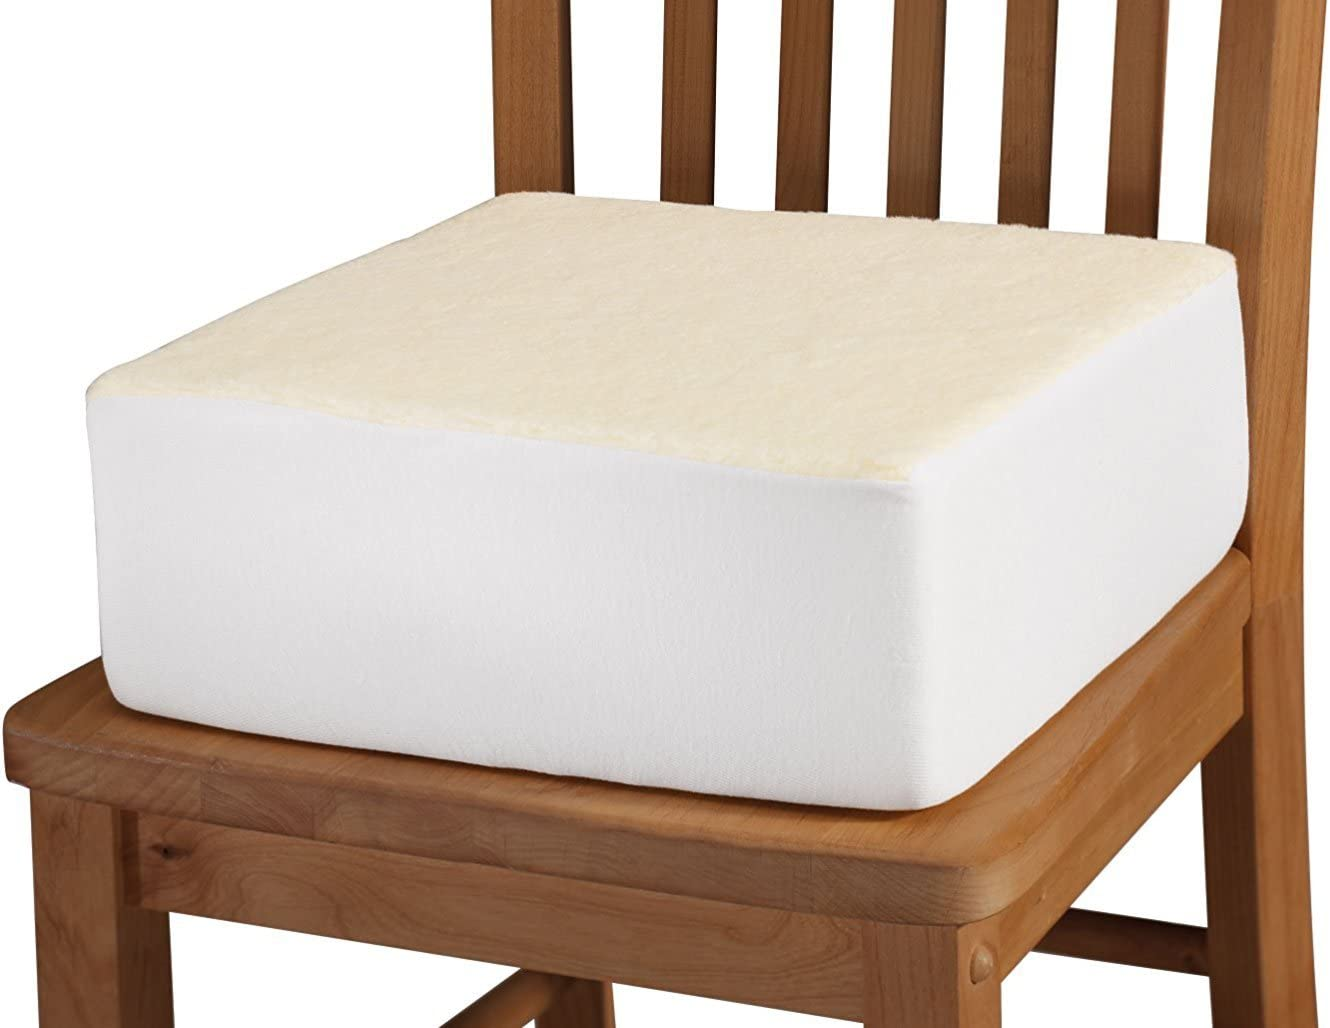 Extra Thick Foam Chair Cushion – Portable Chair Pad Removable Washable Beige Slip-on Cover – 5 Inches Thick Added Pain Pressure Relief